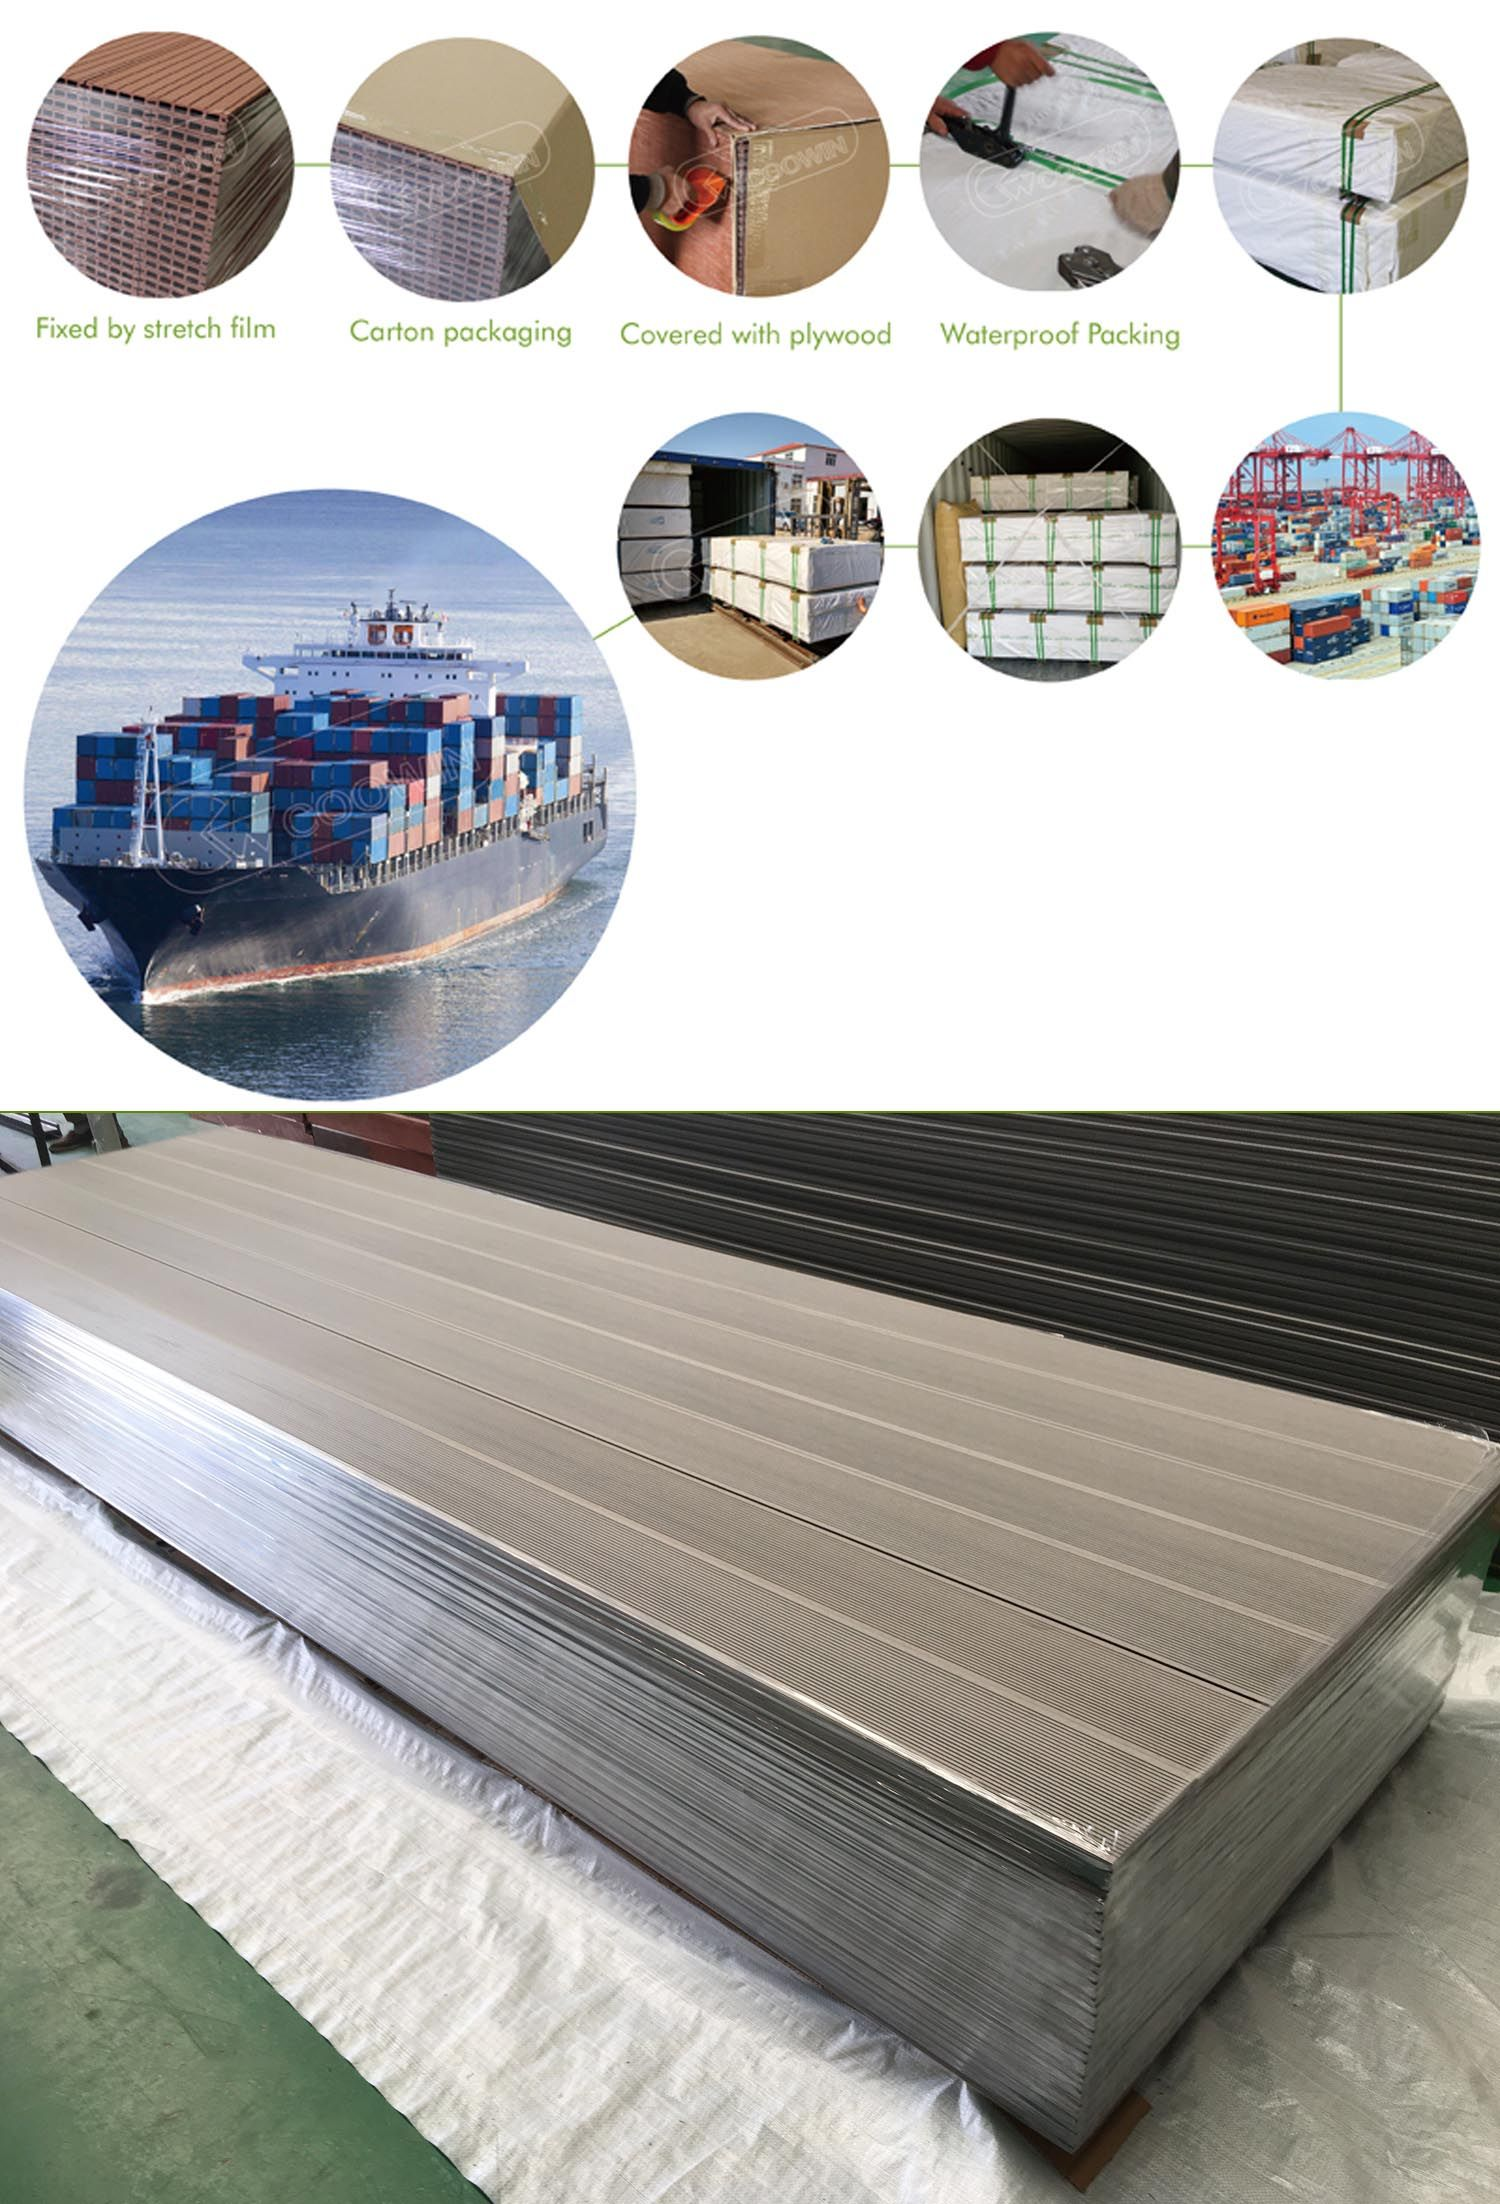 Wpc Decking Packaging Shipping 1 Fixed By Stretch Film 2 Carton Packaging 3 Covered With Plywood 4 Waterproo Outdoor Wall Panels Outdoor Flooring Wpc Decking